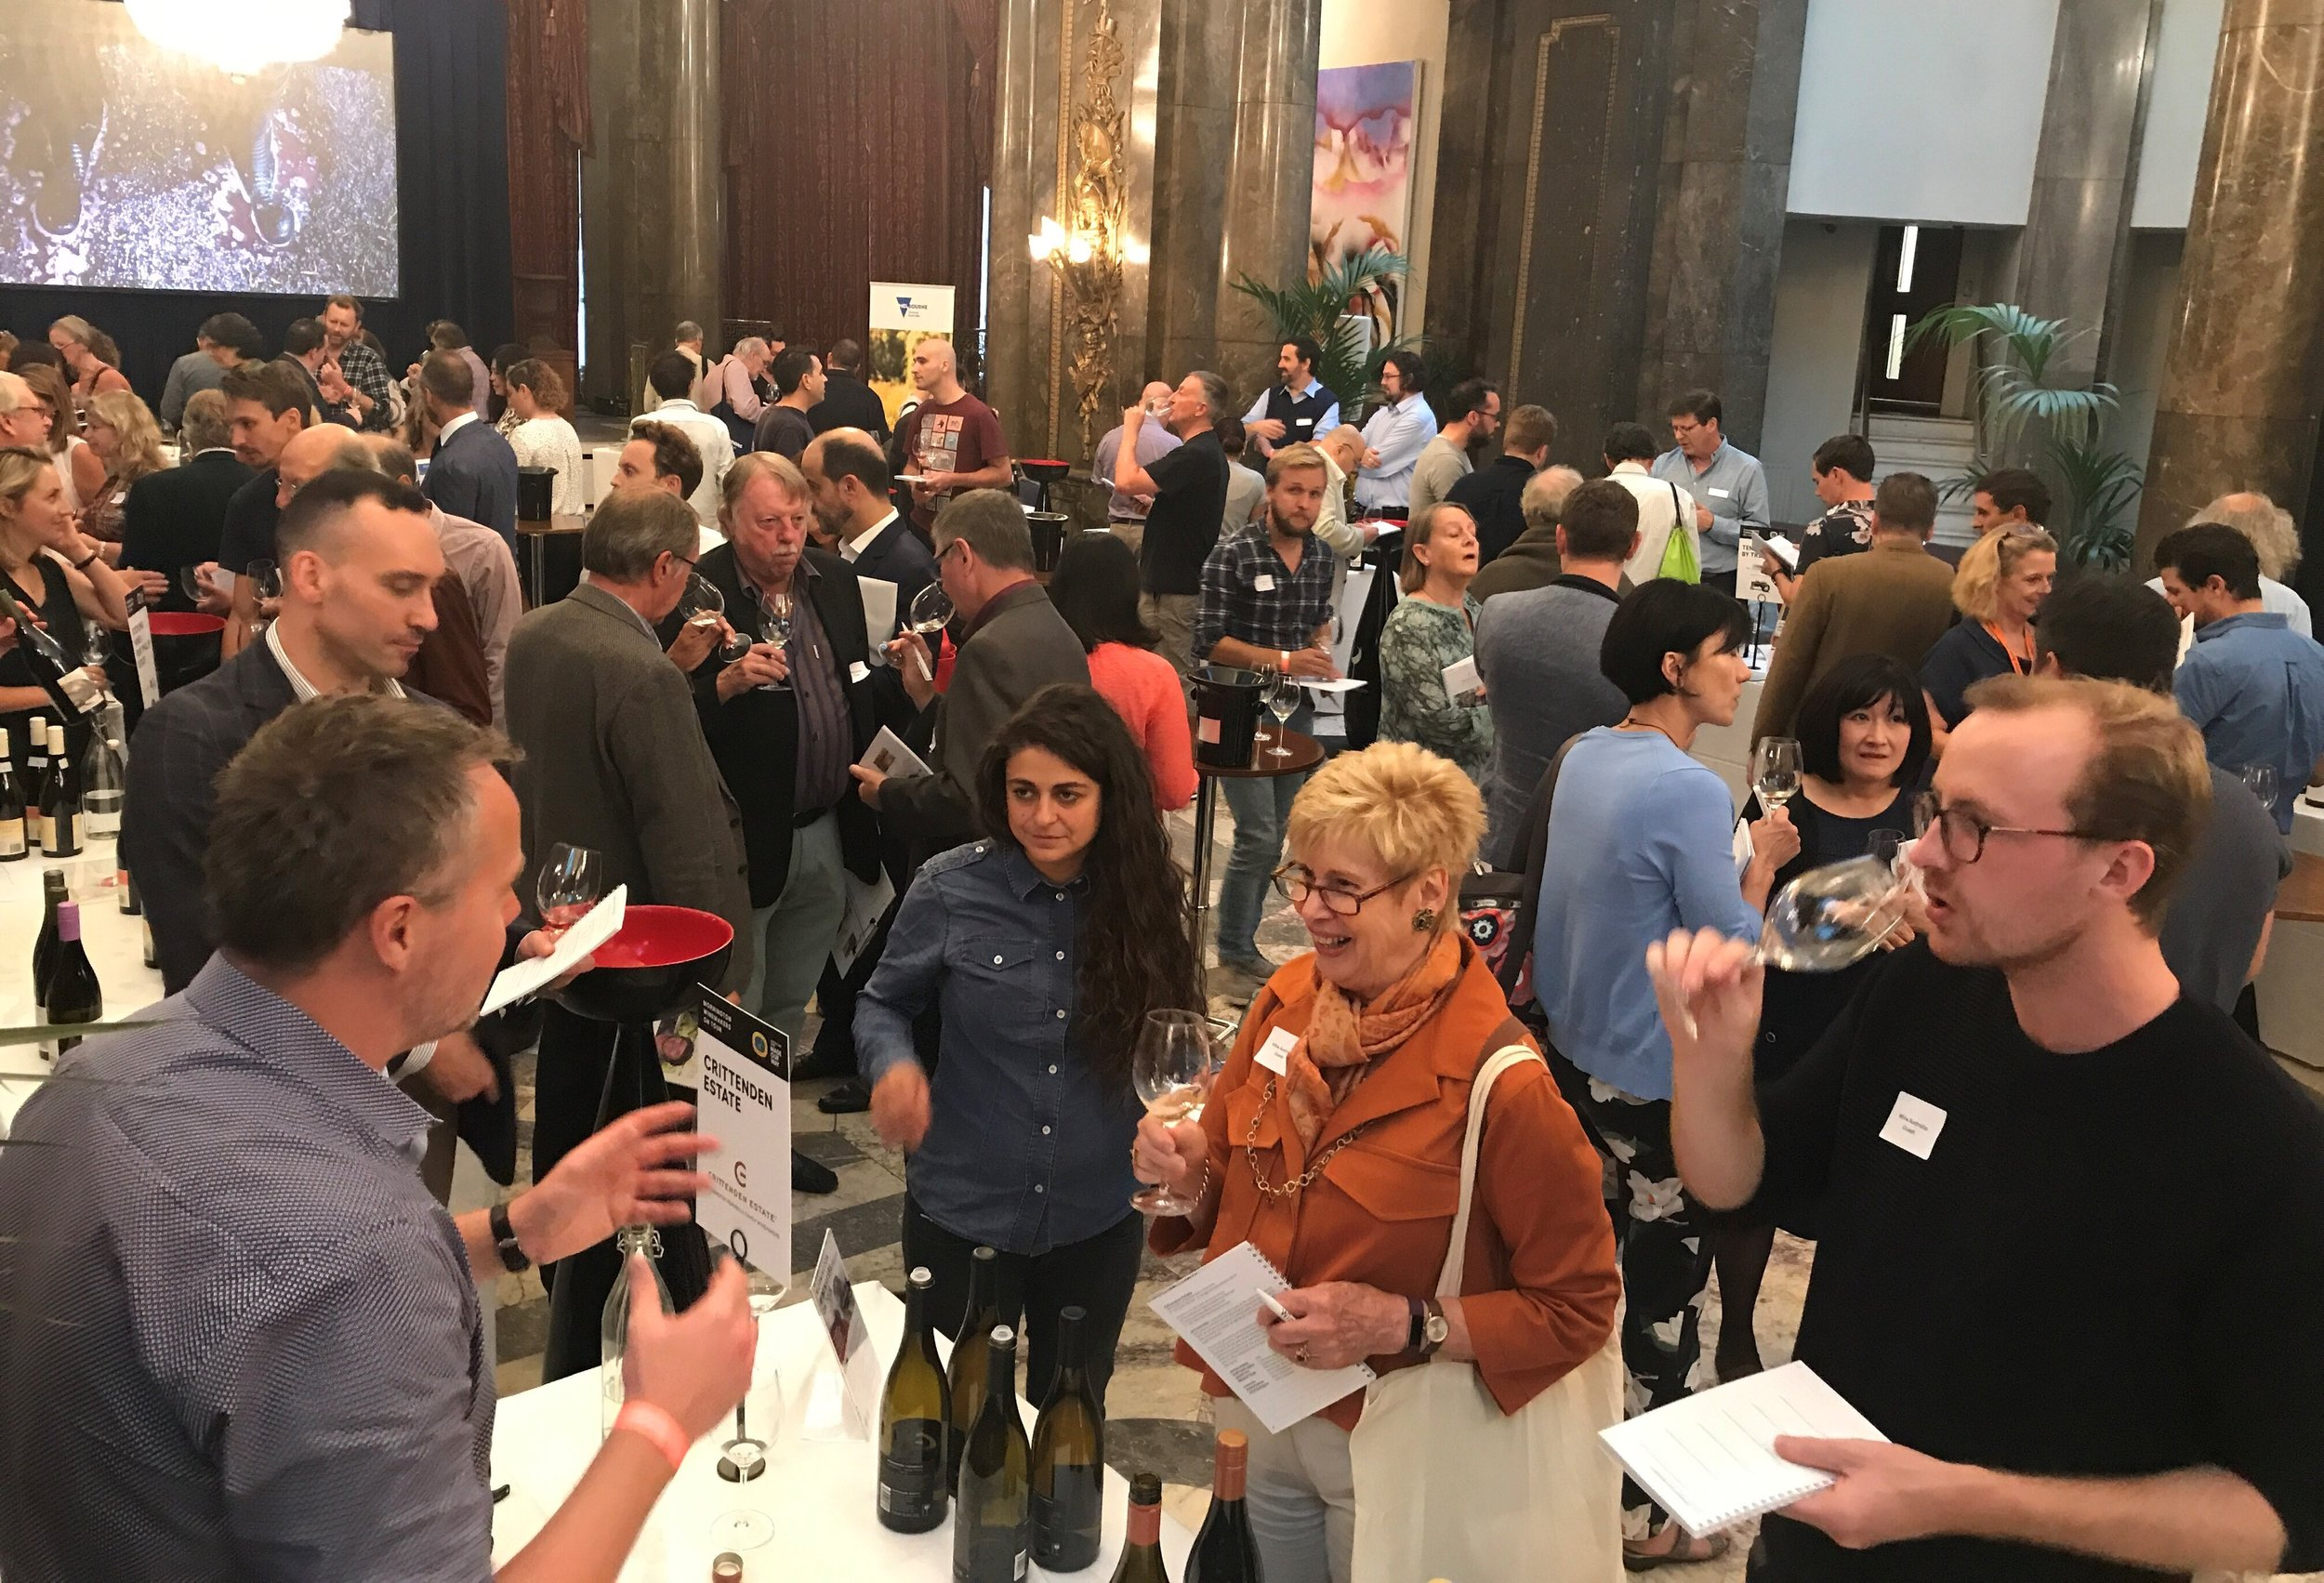 Trade Tasting with the winemakers of MP vignerons association in session during the day (Image credits: Emma Baumann from Wine Australia)